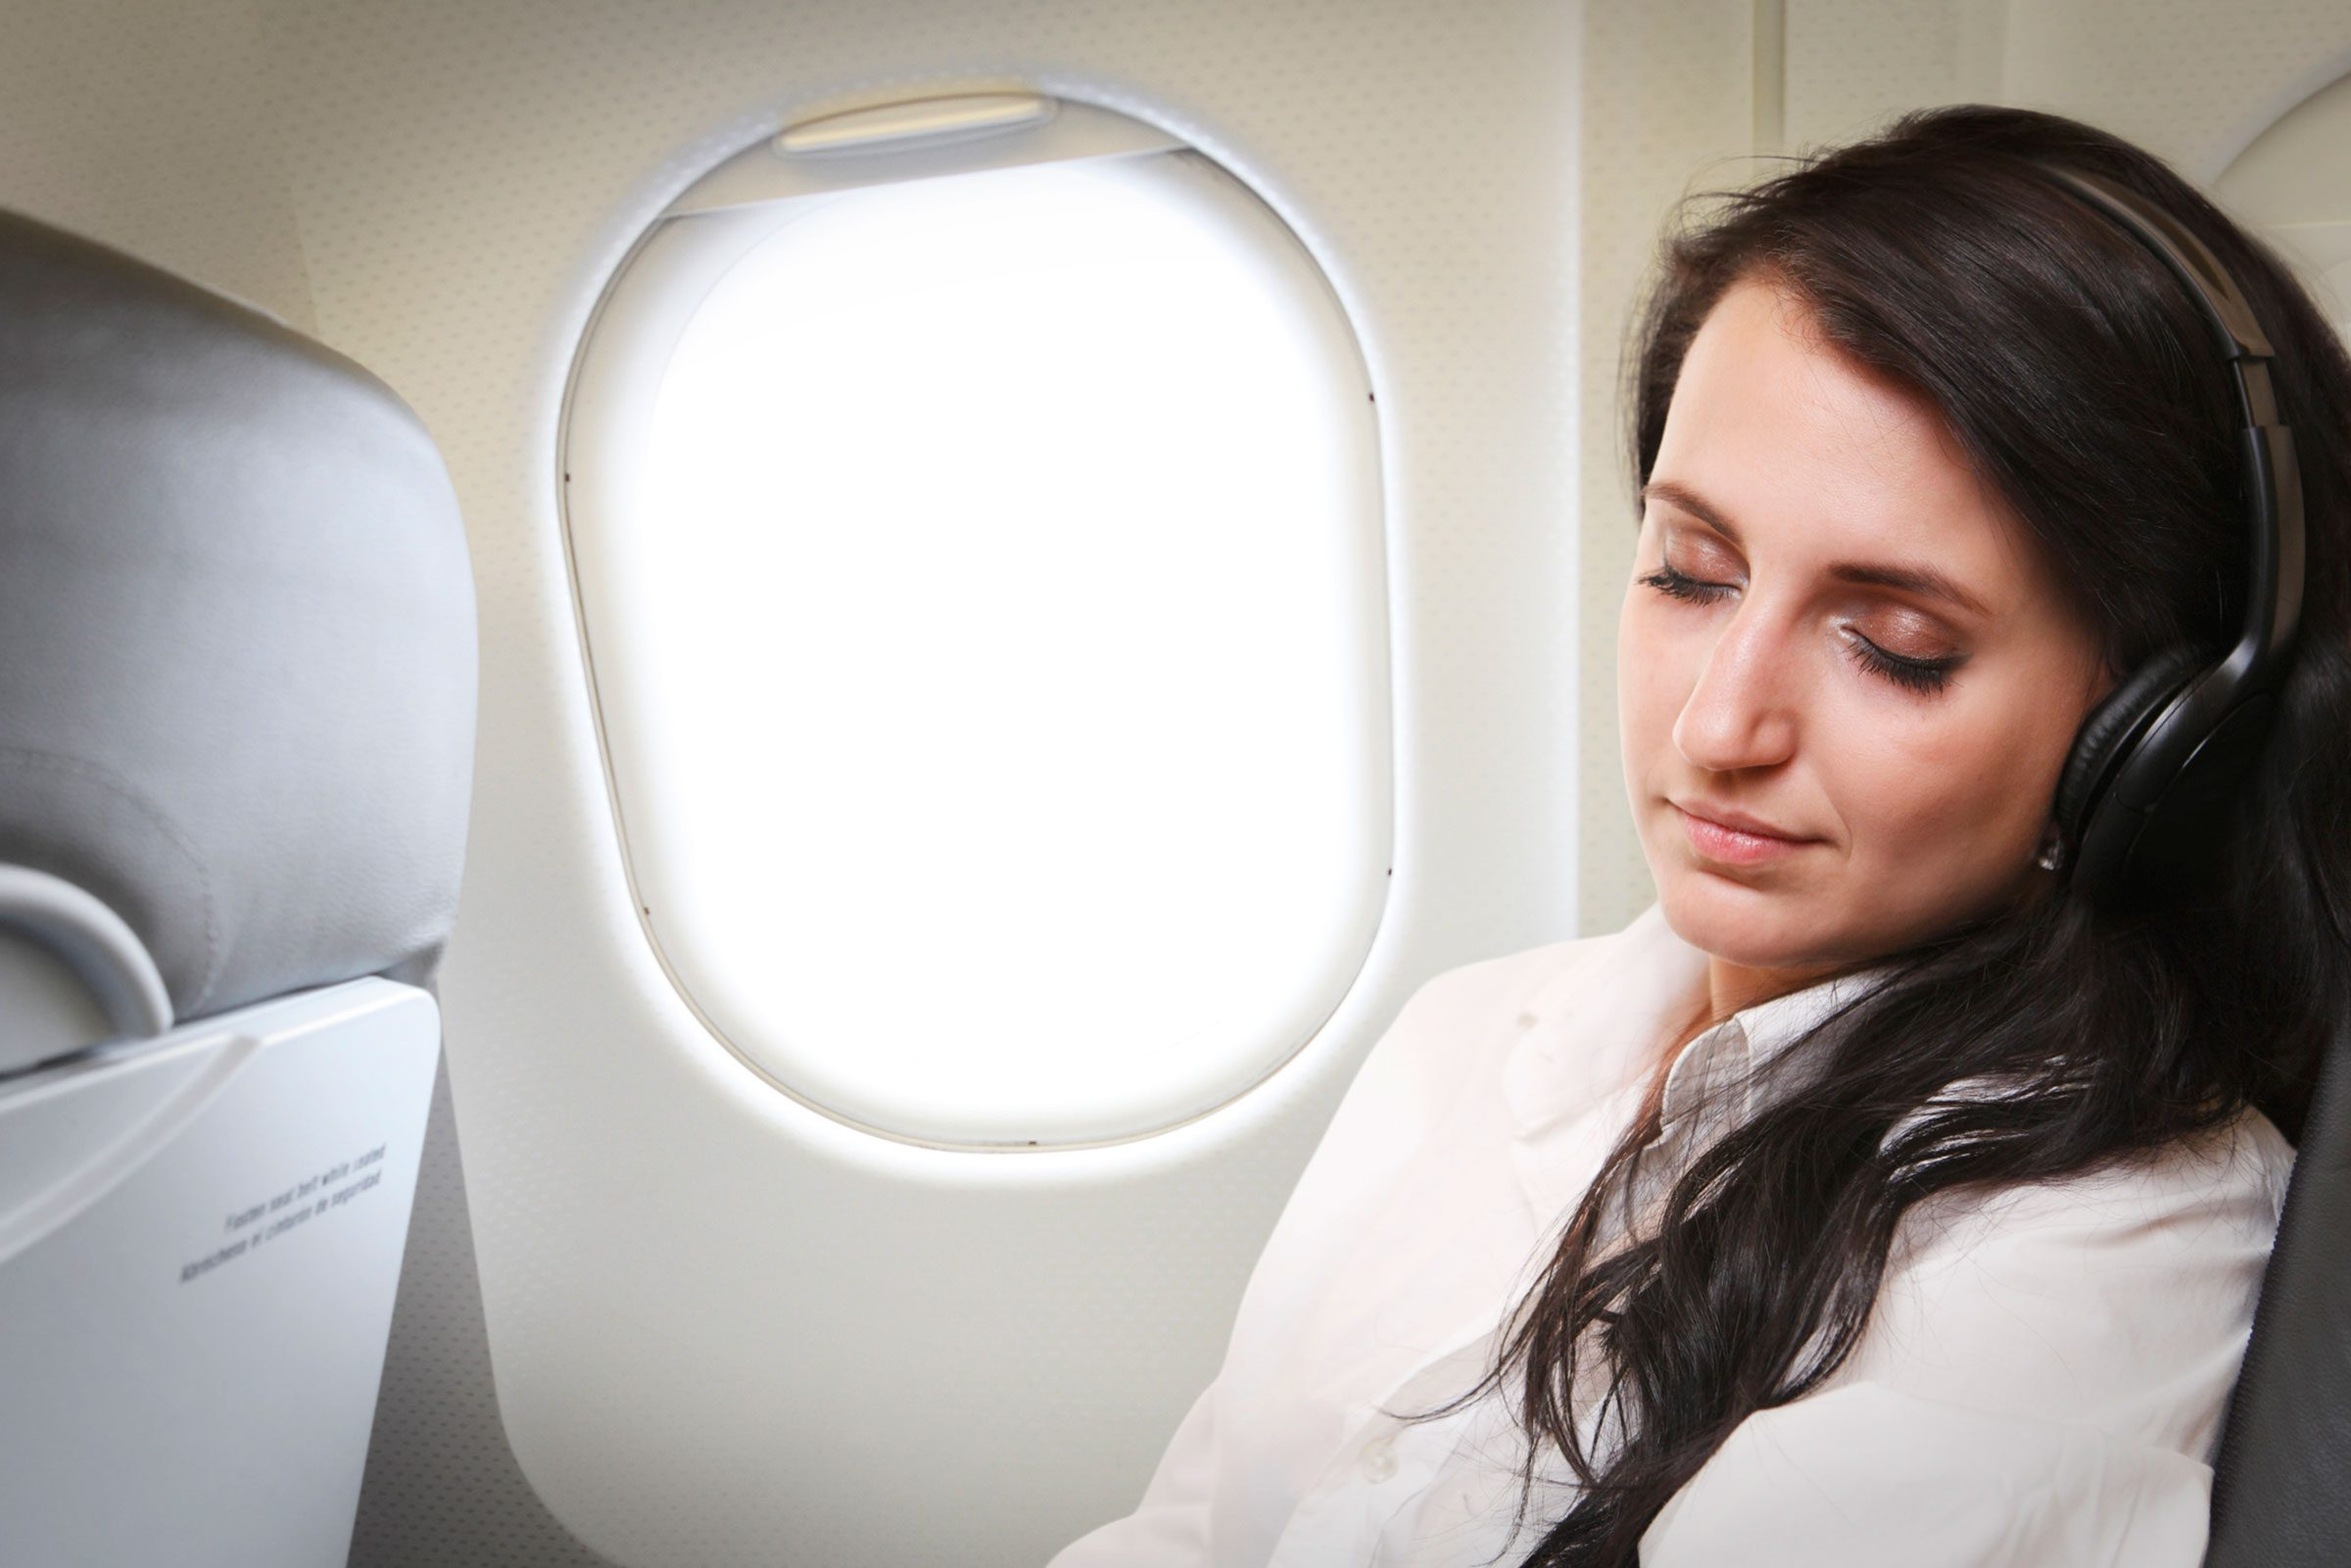 How To Sleep Well On An Airplane Reader's Digest Daughter Fall Asleep  Waiting Her Sick